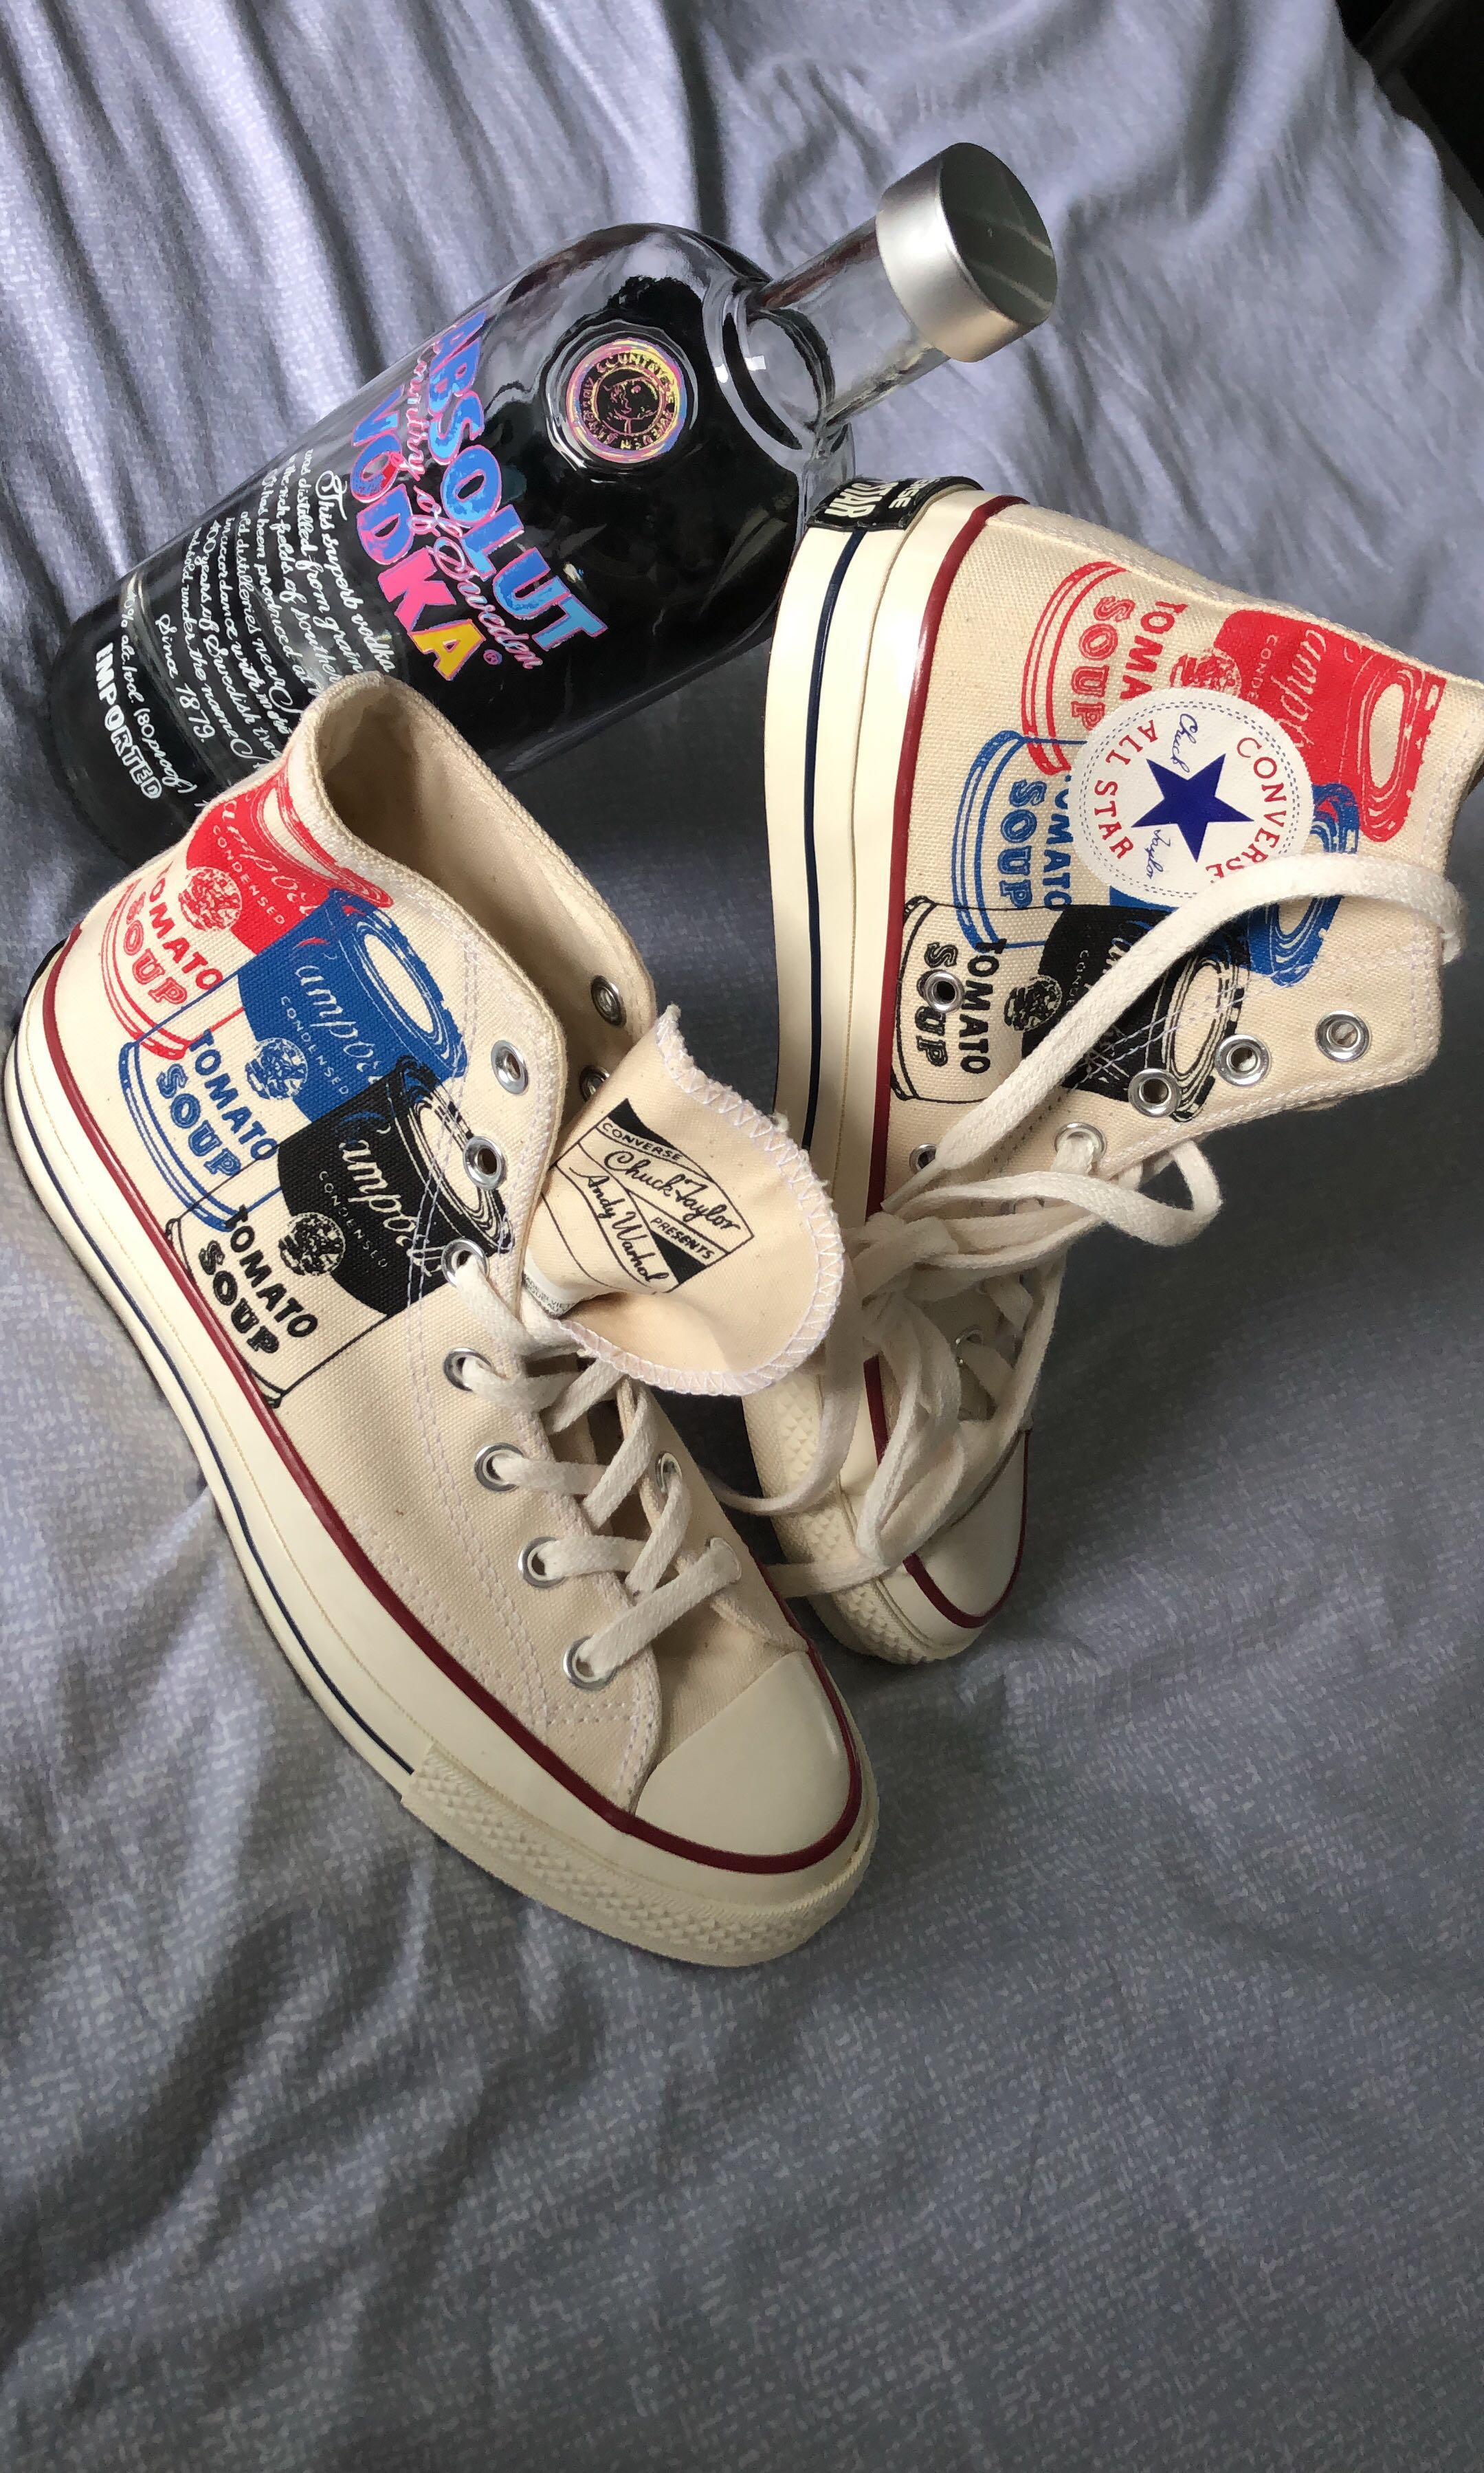 9aef37ce4fbccc Converse x Andy Warhol Collab Campbell Soup Chuck Taylors